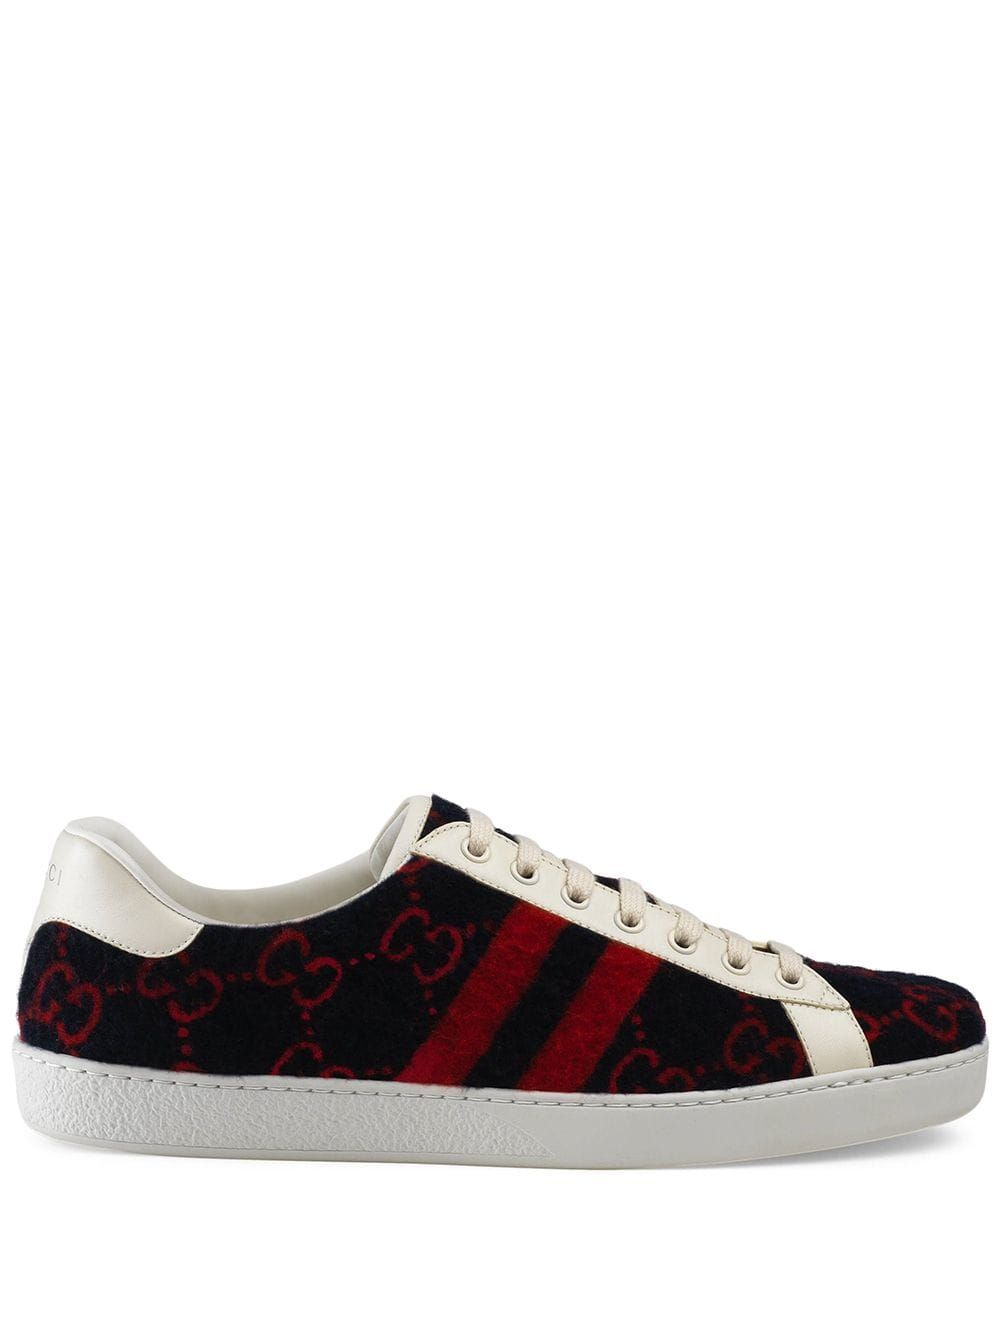 1ea9ed016d0 GUCCI GUCCI ACE GG WOOL SNEAKERS - BLUE.  gucci  shoes